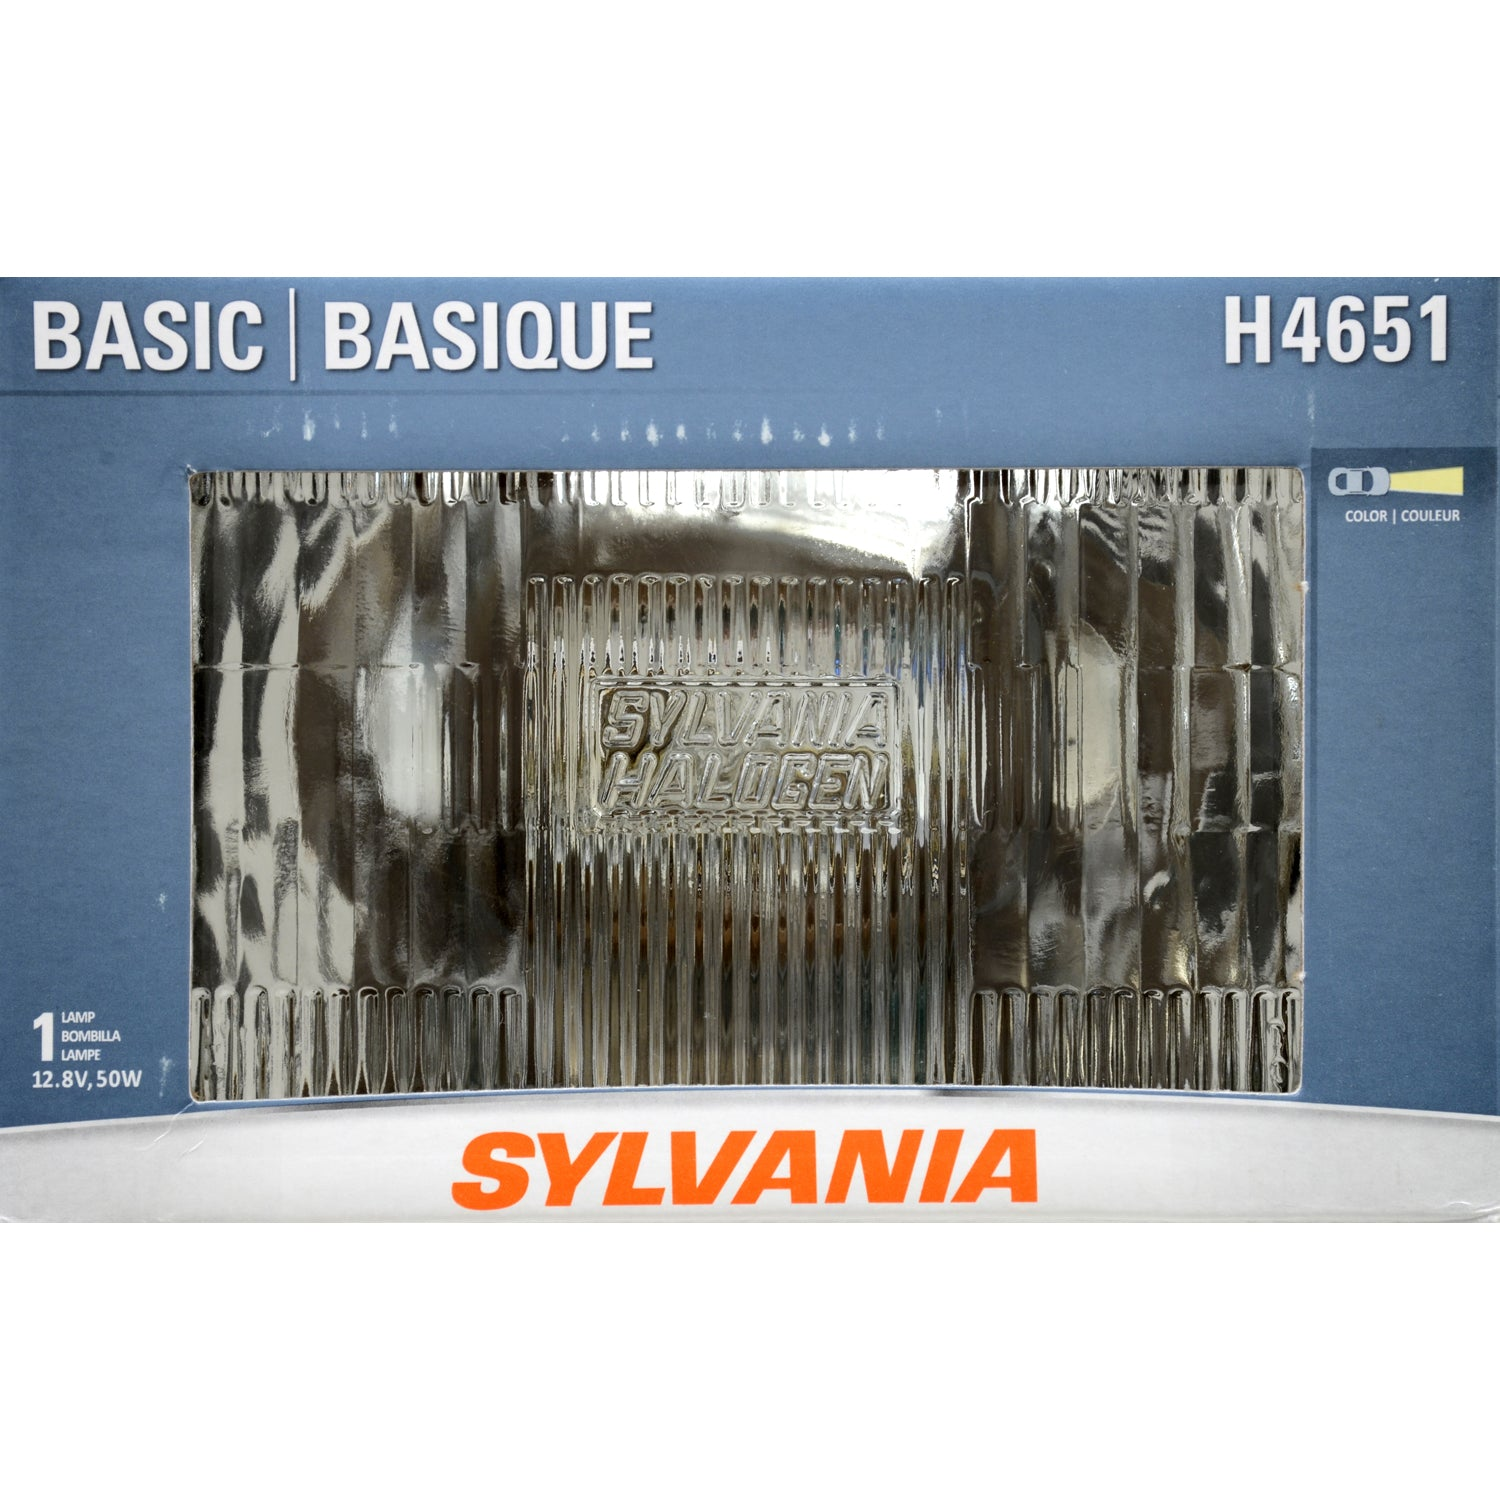 SYLVANIA H4651 1A1 Headlight 100x165 Automotive Bulb